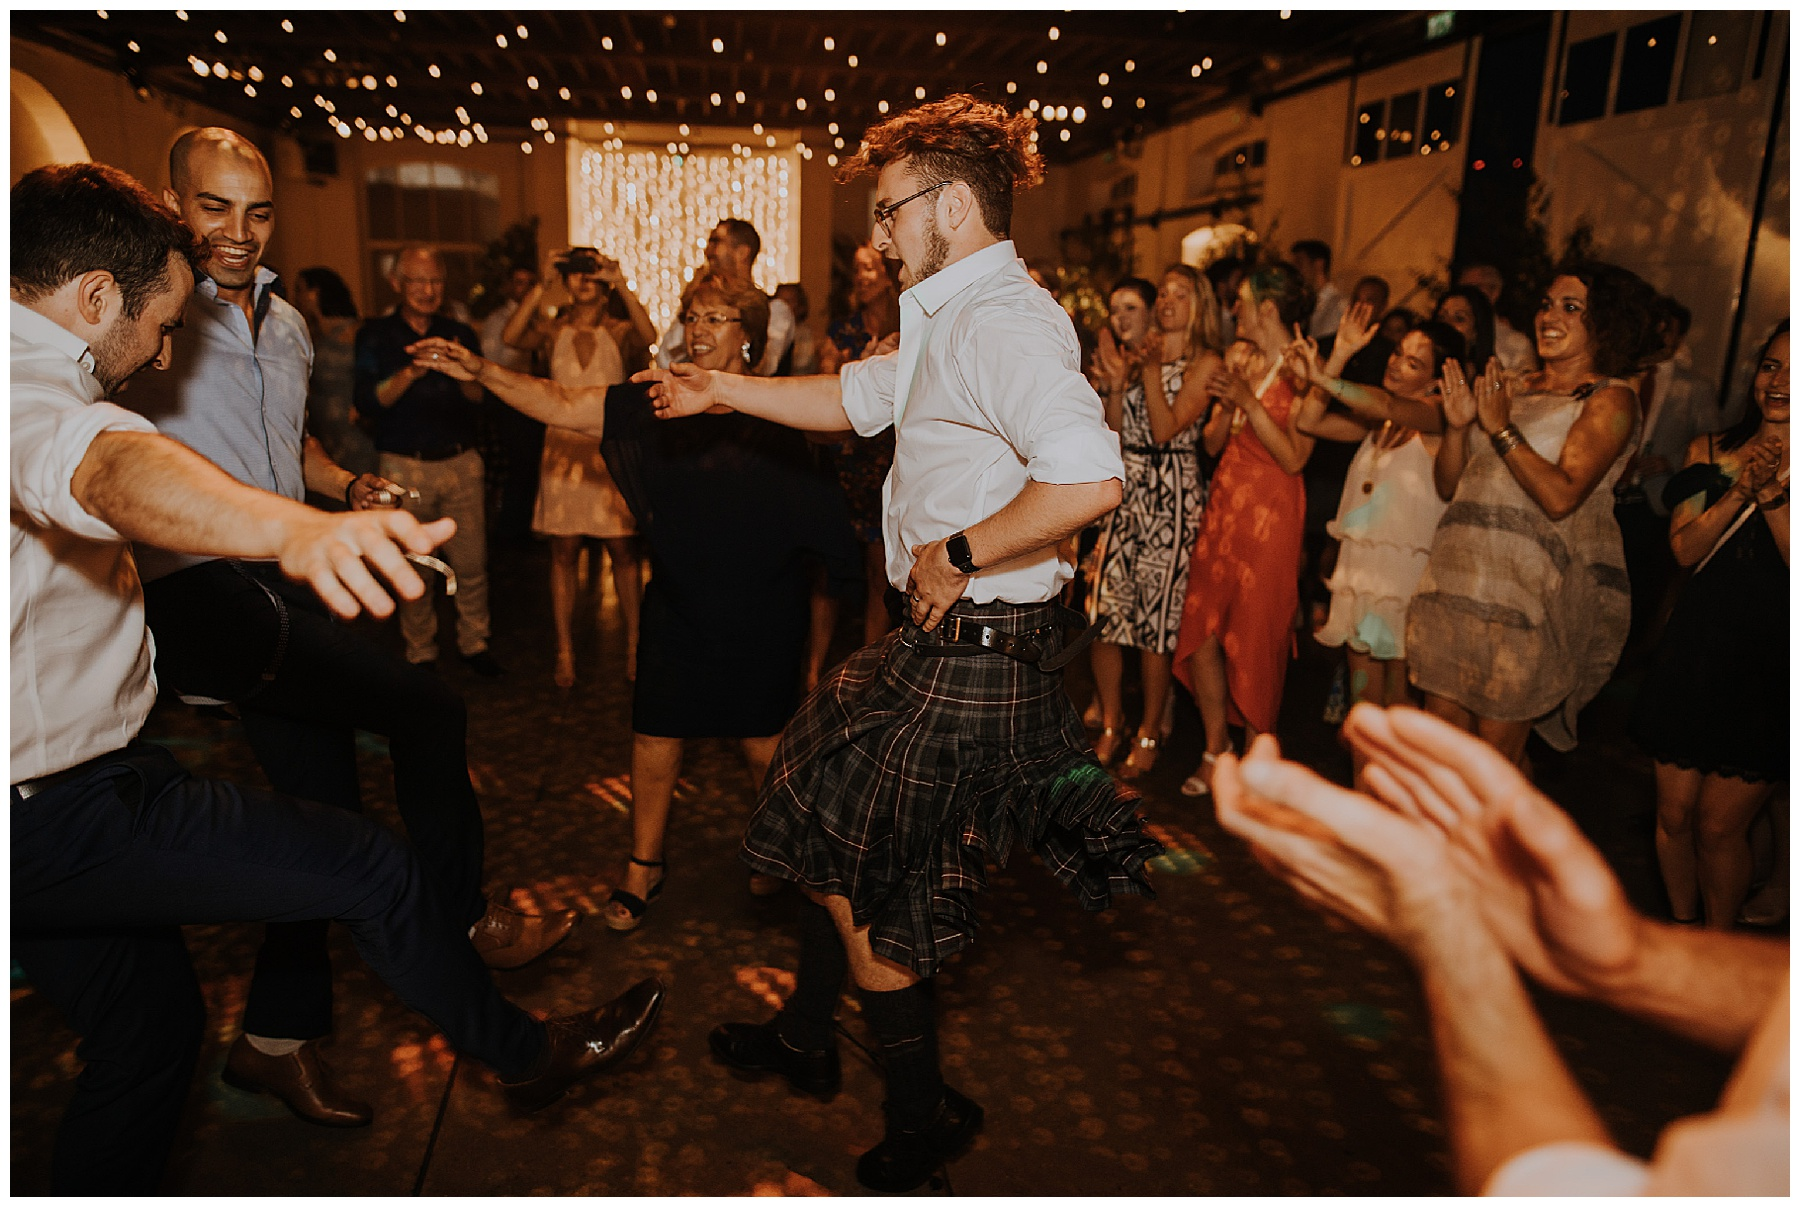 man dances in a kilt